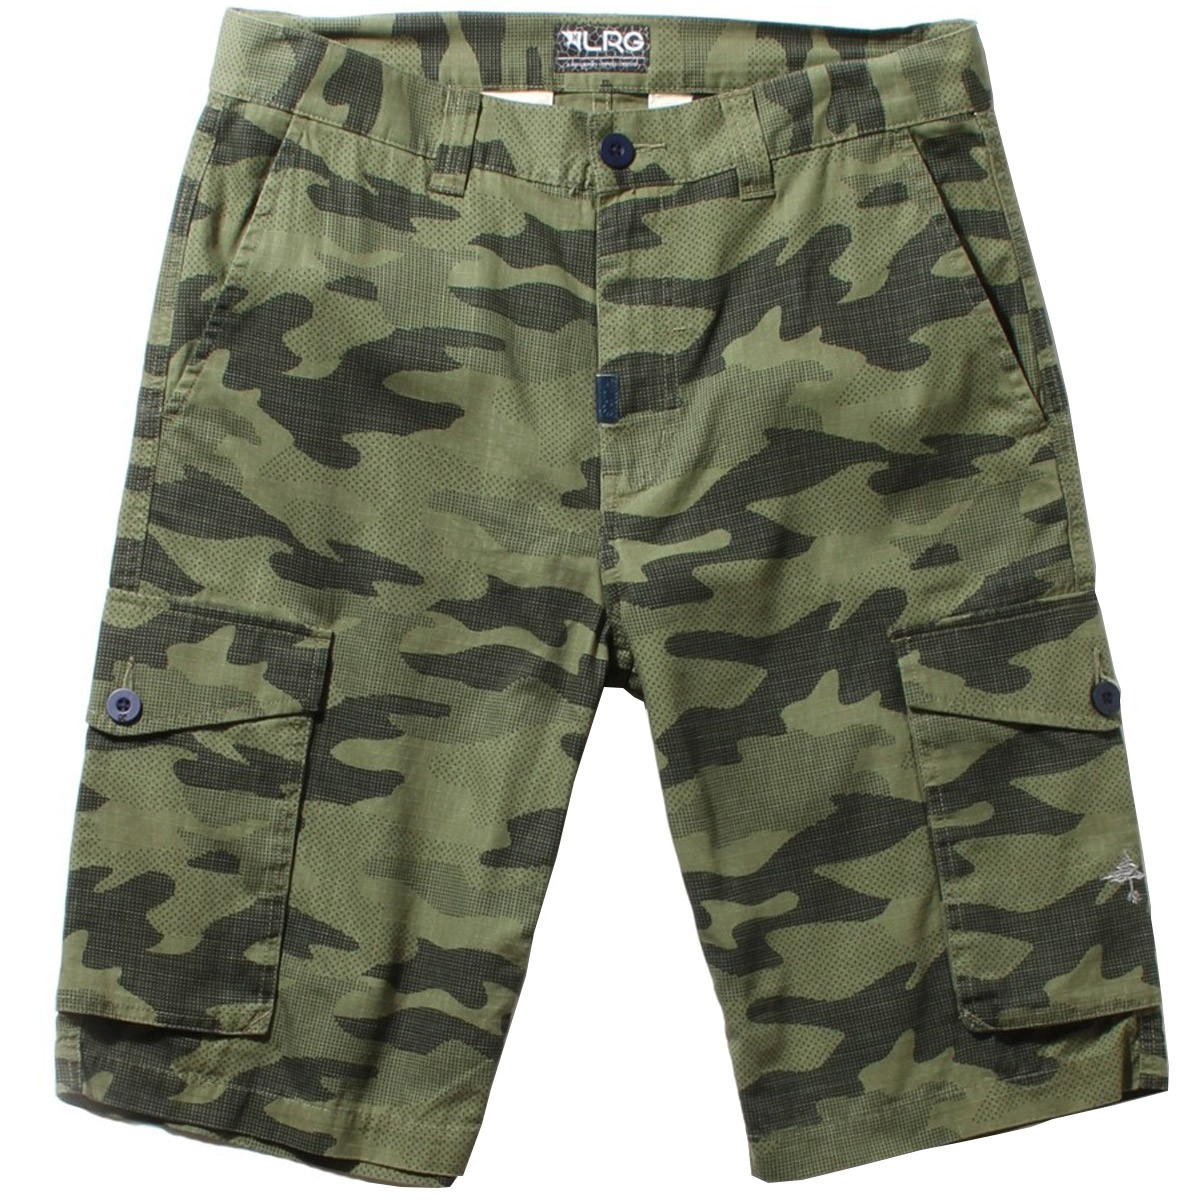 LRG RC Cargo Shorts - Olive Green Camo